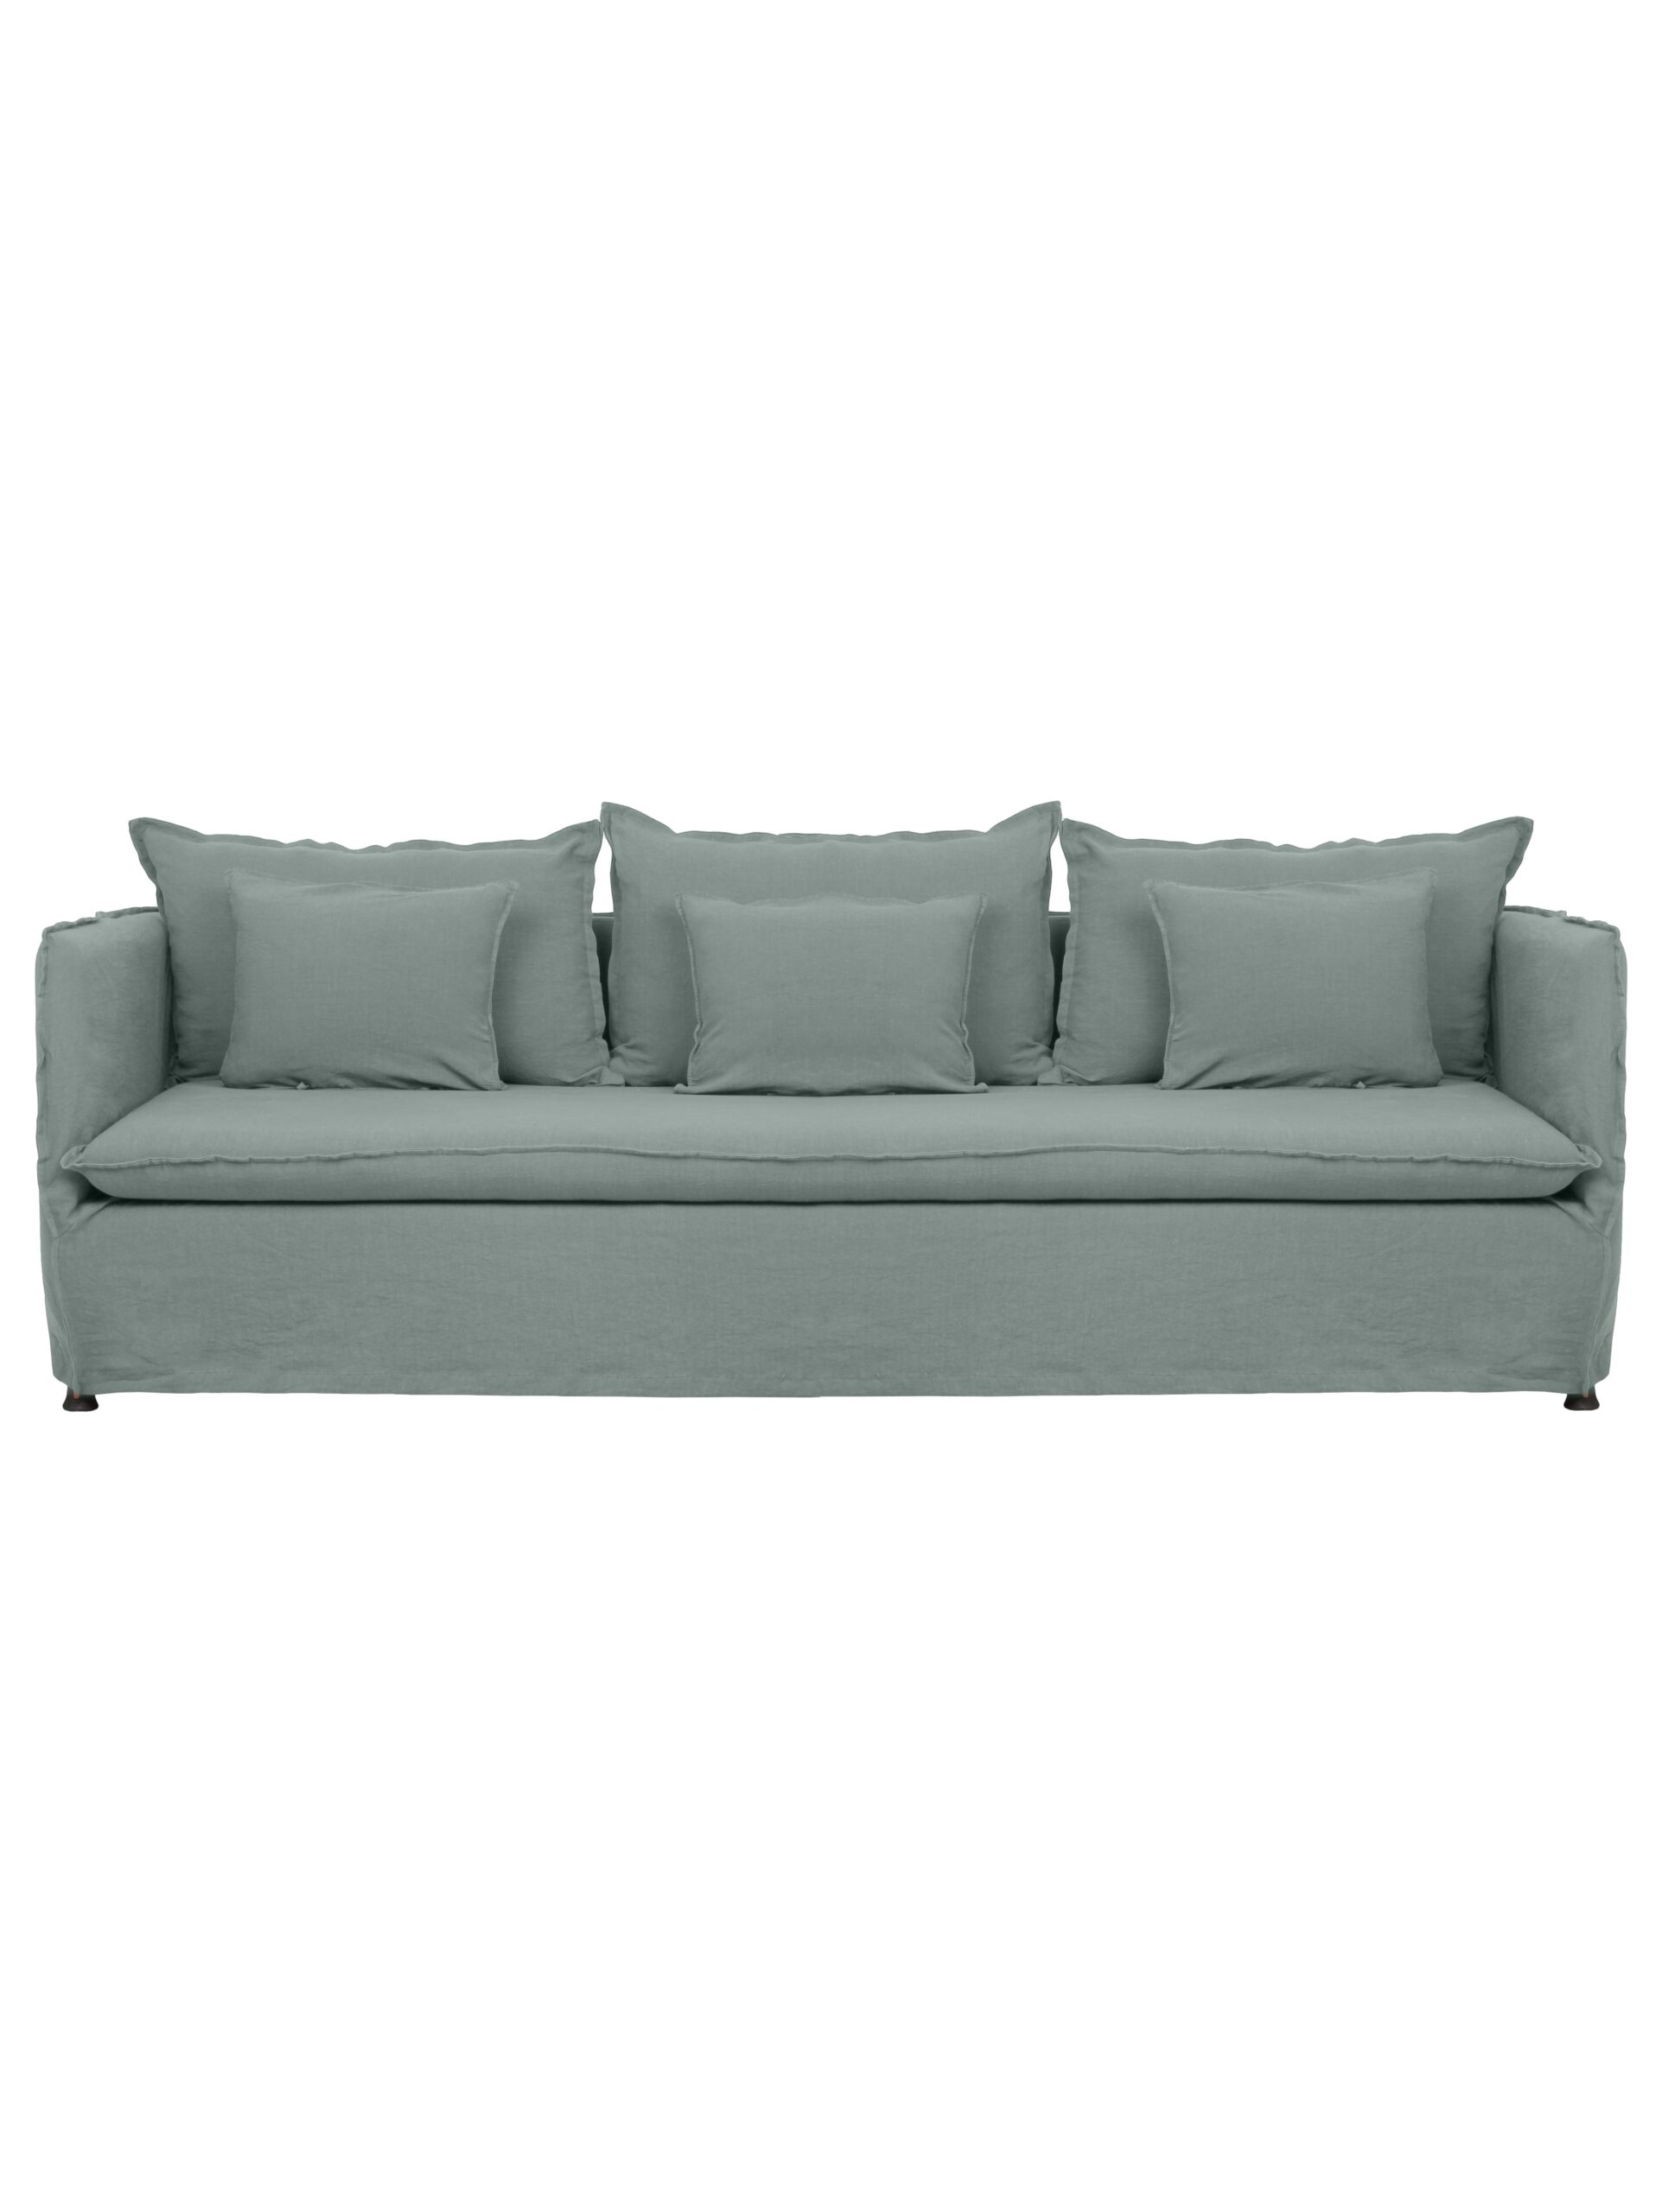 Full Size of Canape Sofa Canap Holi Caravane Antikes Liege Mit Led Big L Form Mondo Comfortmaster Xxl Le Corbusier Boxspring Schlaffunktion Zweisitzer Alternatives De Sede Sofa Canape Sofa